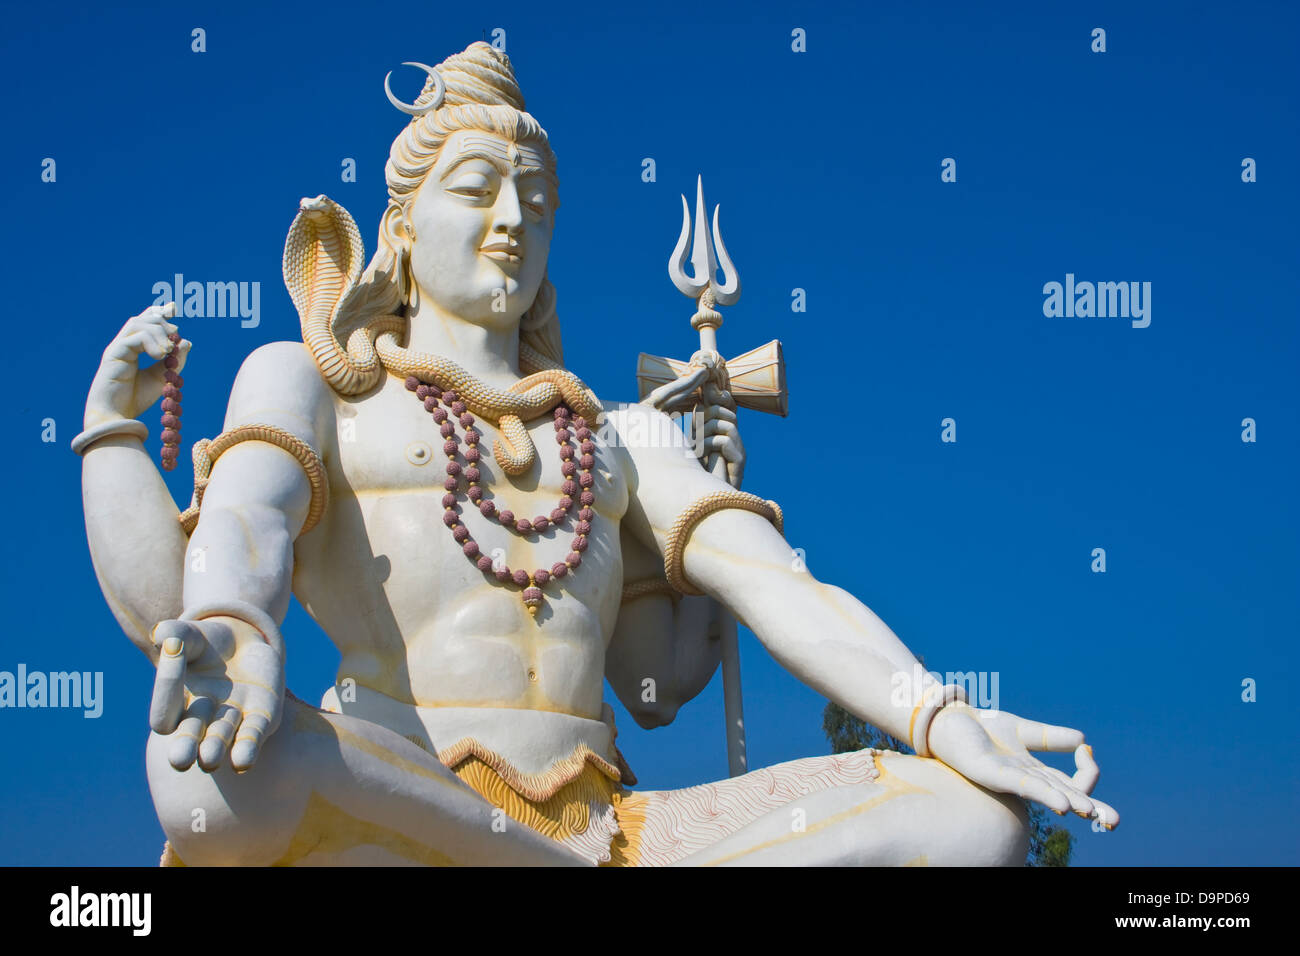 Asia, India, Karnataka, Bijapur, Shiva Shivagiri, Lord Shiva Statue Stock Photo